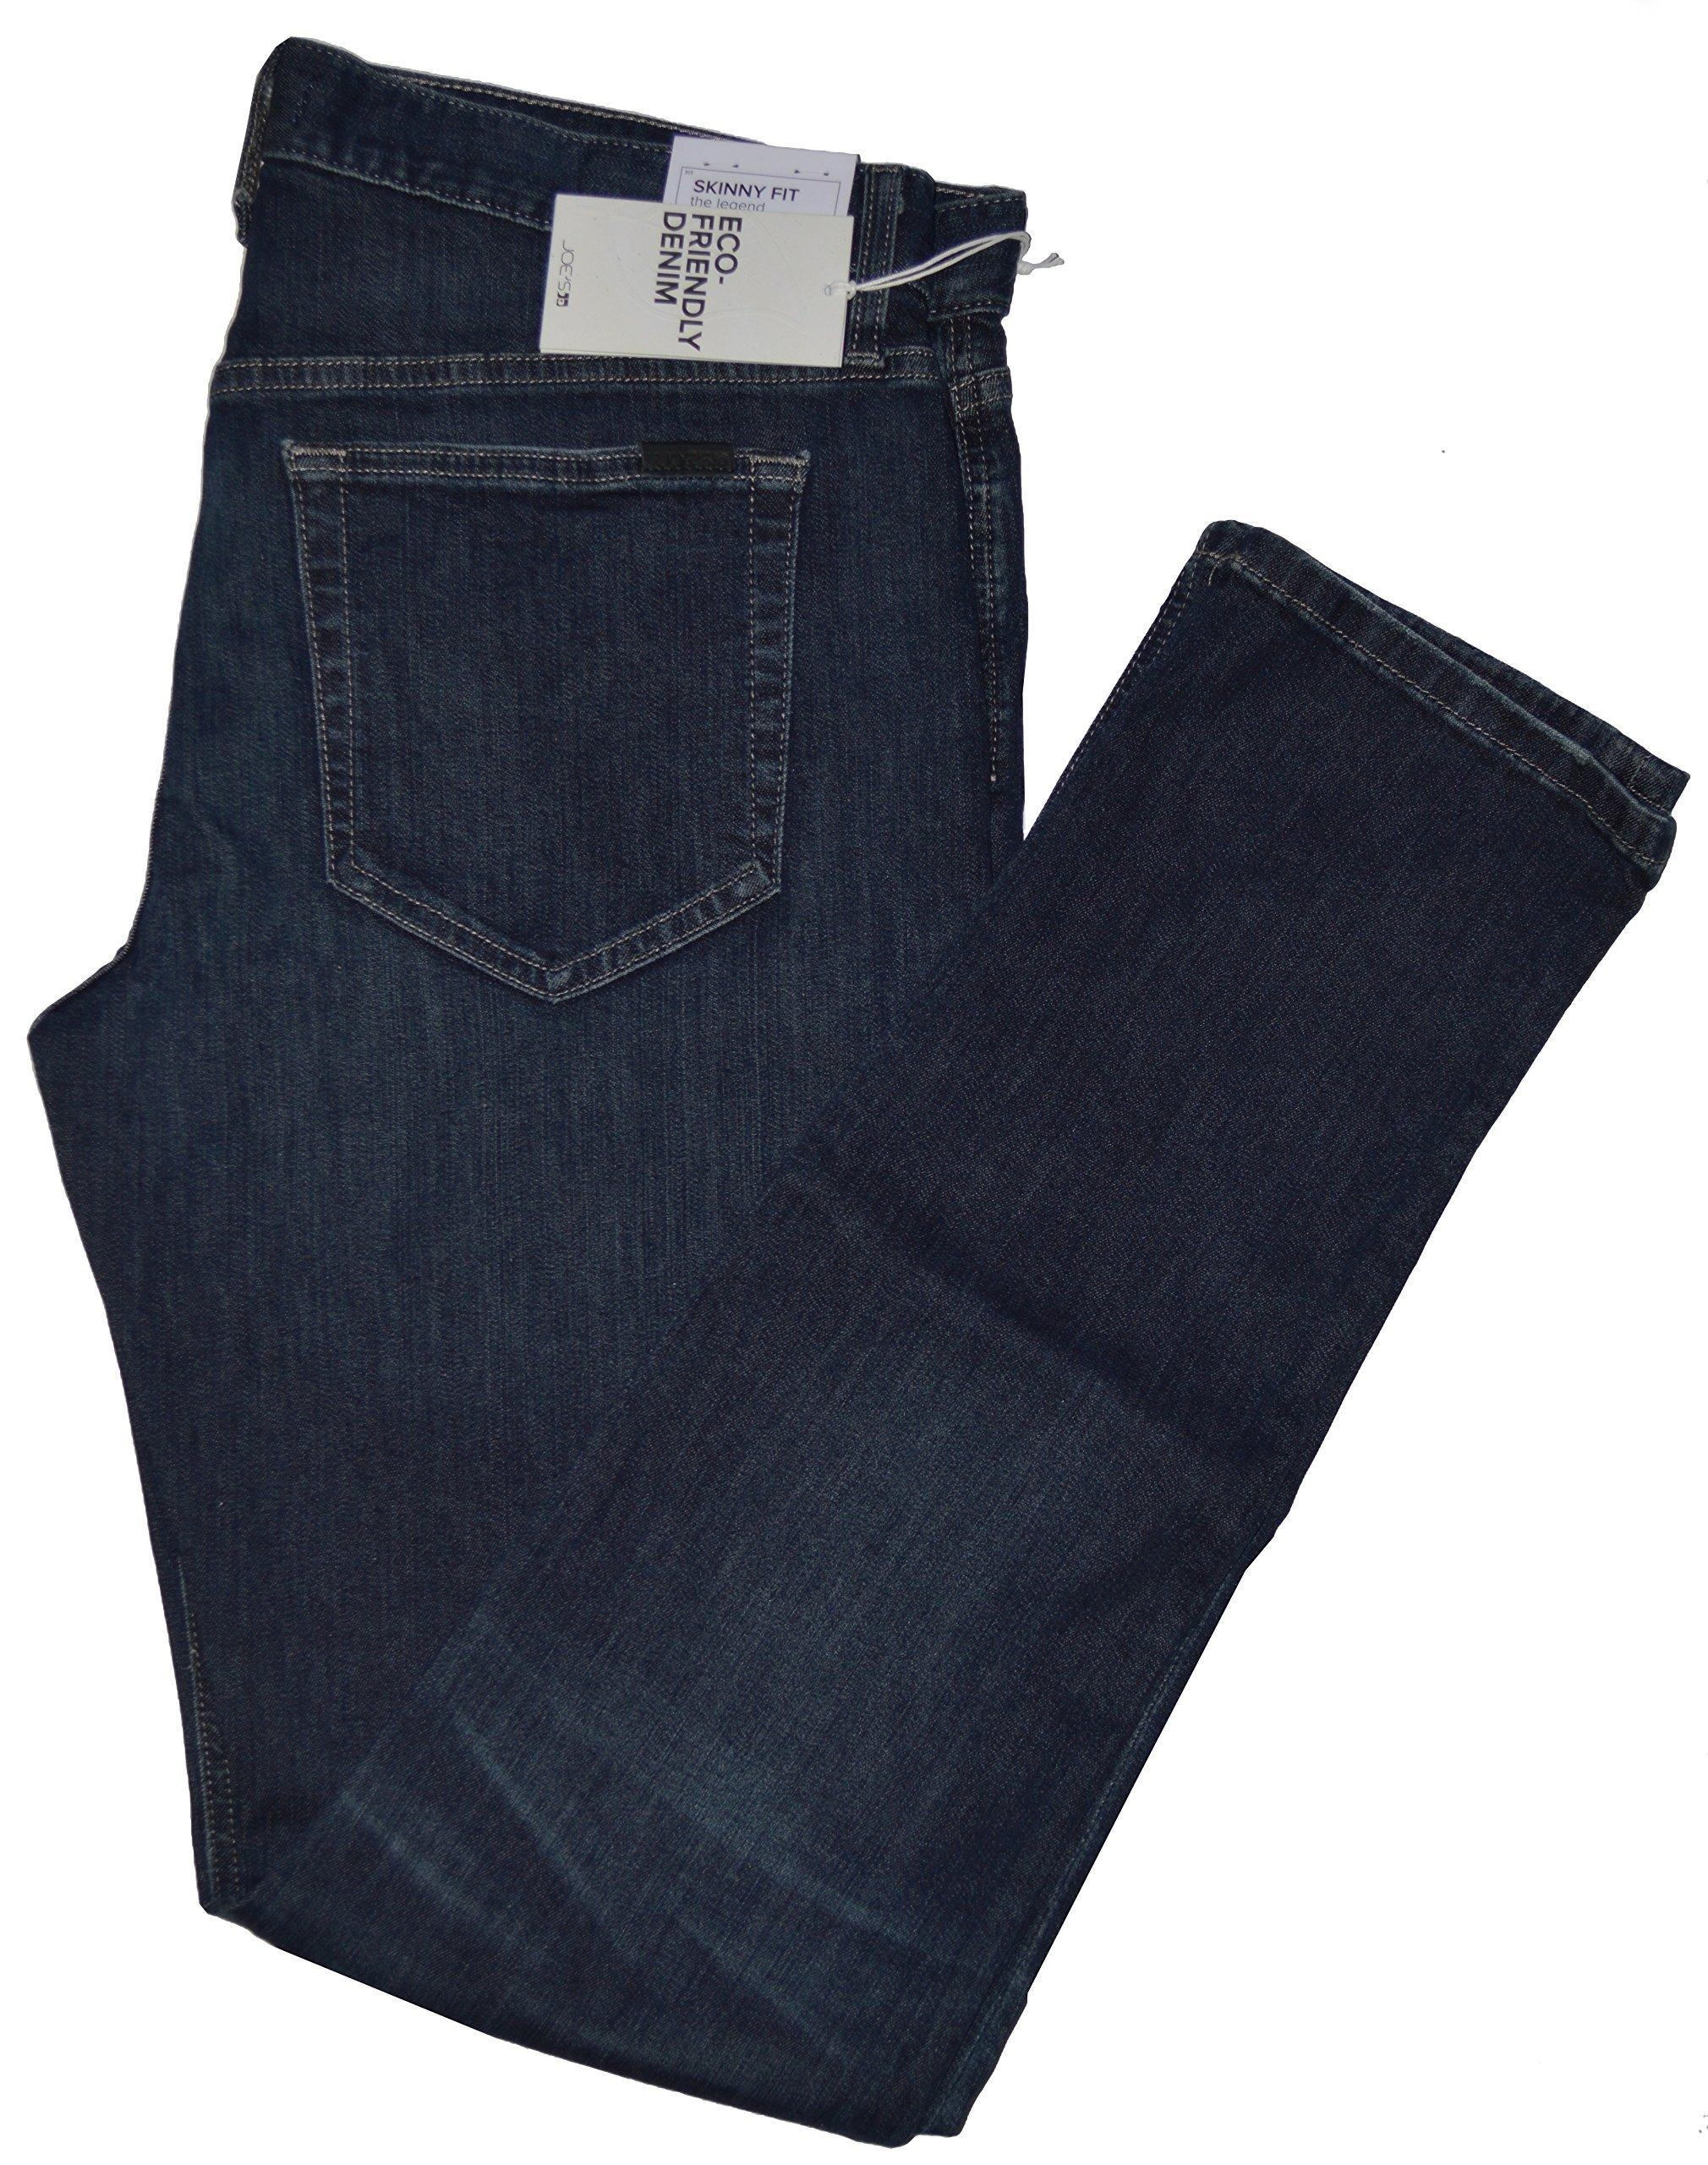 Joe's Jeans Men's Skinny Fit The Legend Kassidy Blue Denim Jeans (33)